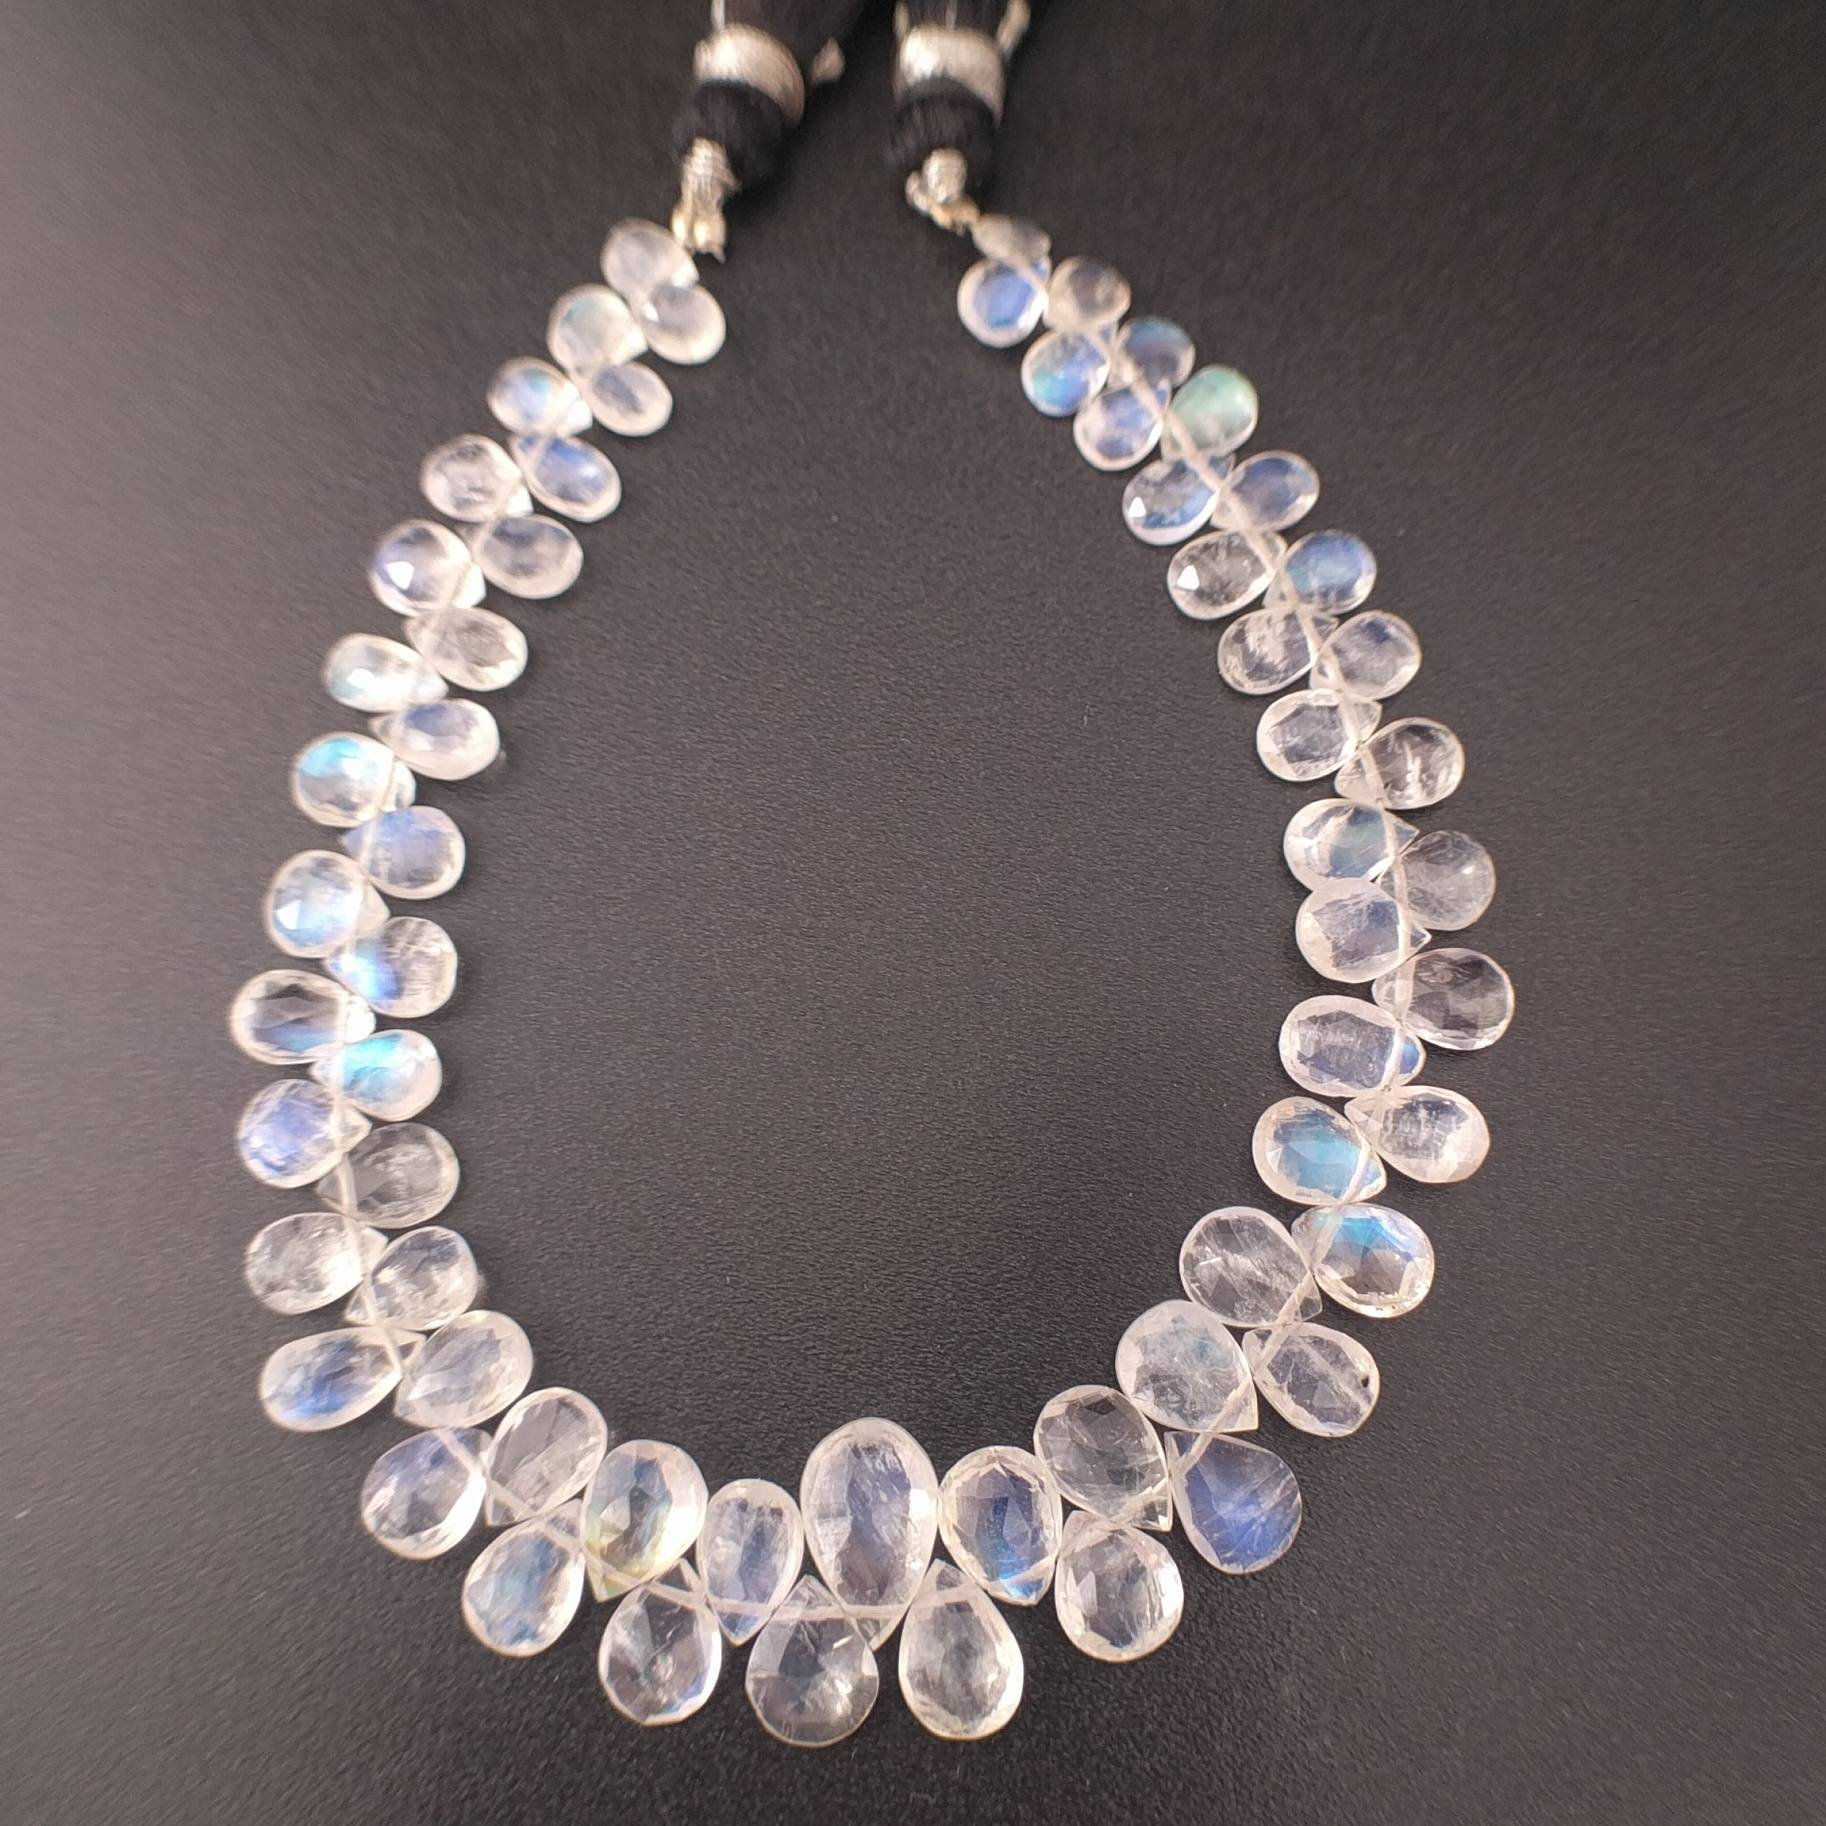 Bio Moonstone Rondelle,Natural Bio Moonstone Faceted Rondelle Shape Beads,Top Quality Bio Briolettes Beads,7-9 Approx,8 Inches Beads